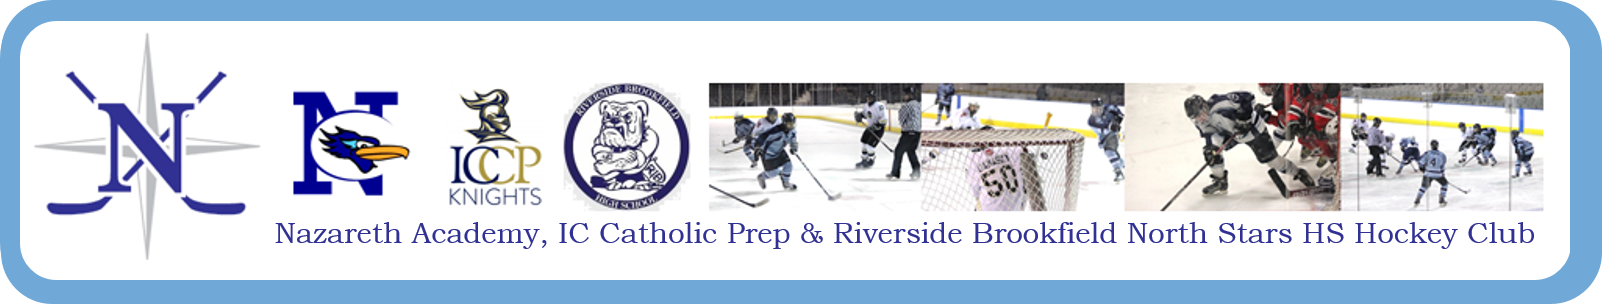 Nazareth Academy / IC Catholic Prep / Riverside Brookfield